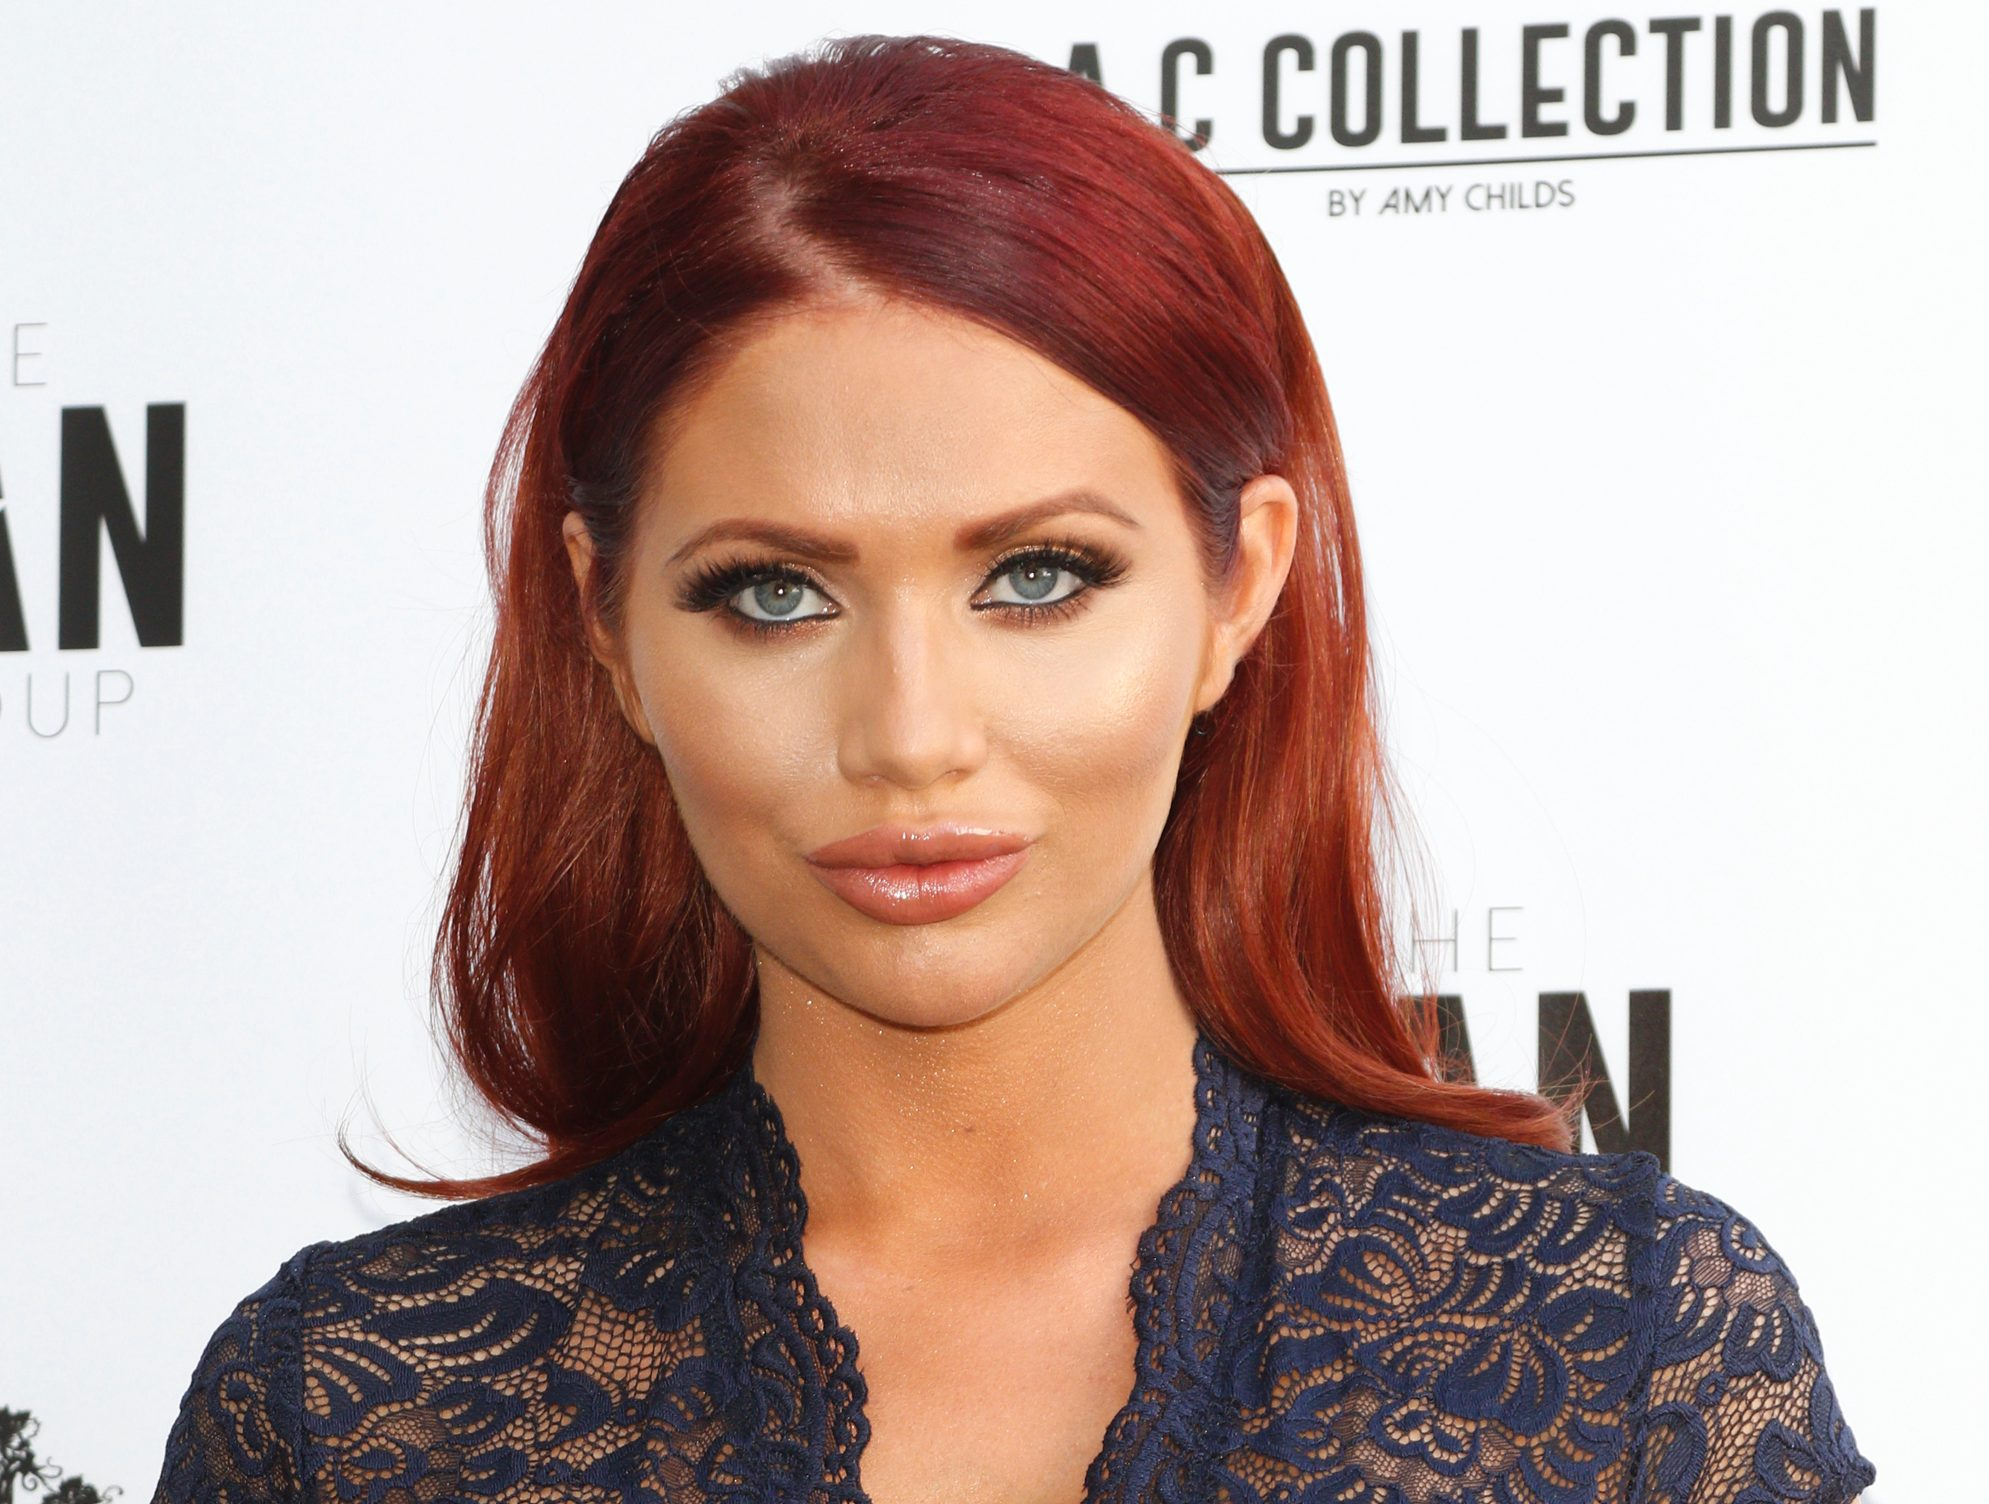 Pictures Amy Childs nudes (28 photo), Topless, Paparazzi, Twitter, braless 2017